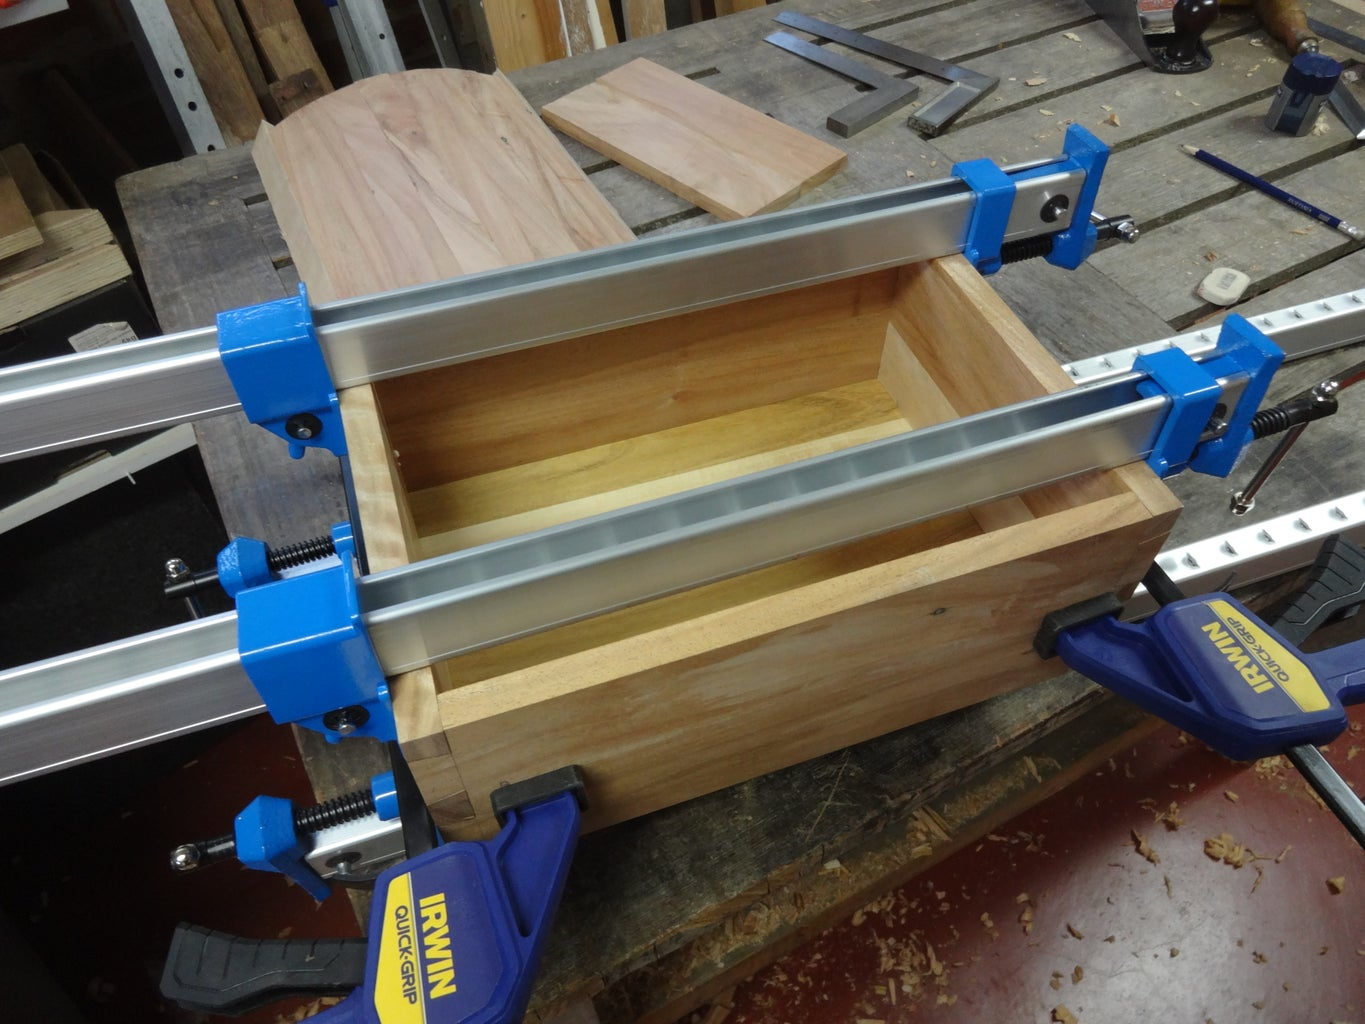 Gluing Up the Box and Plugging Pin Holes